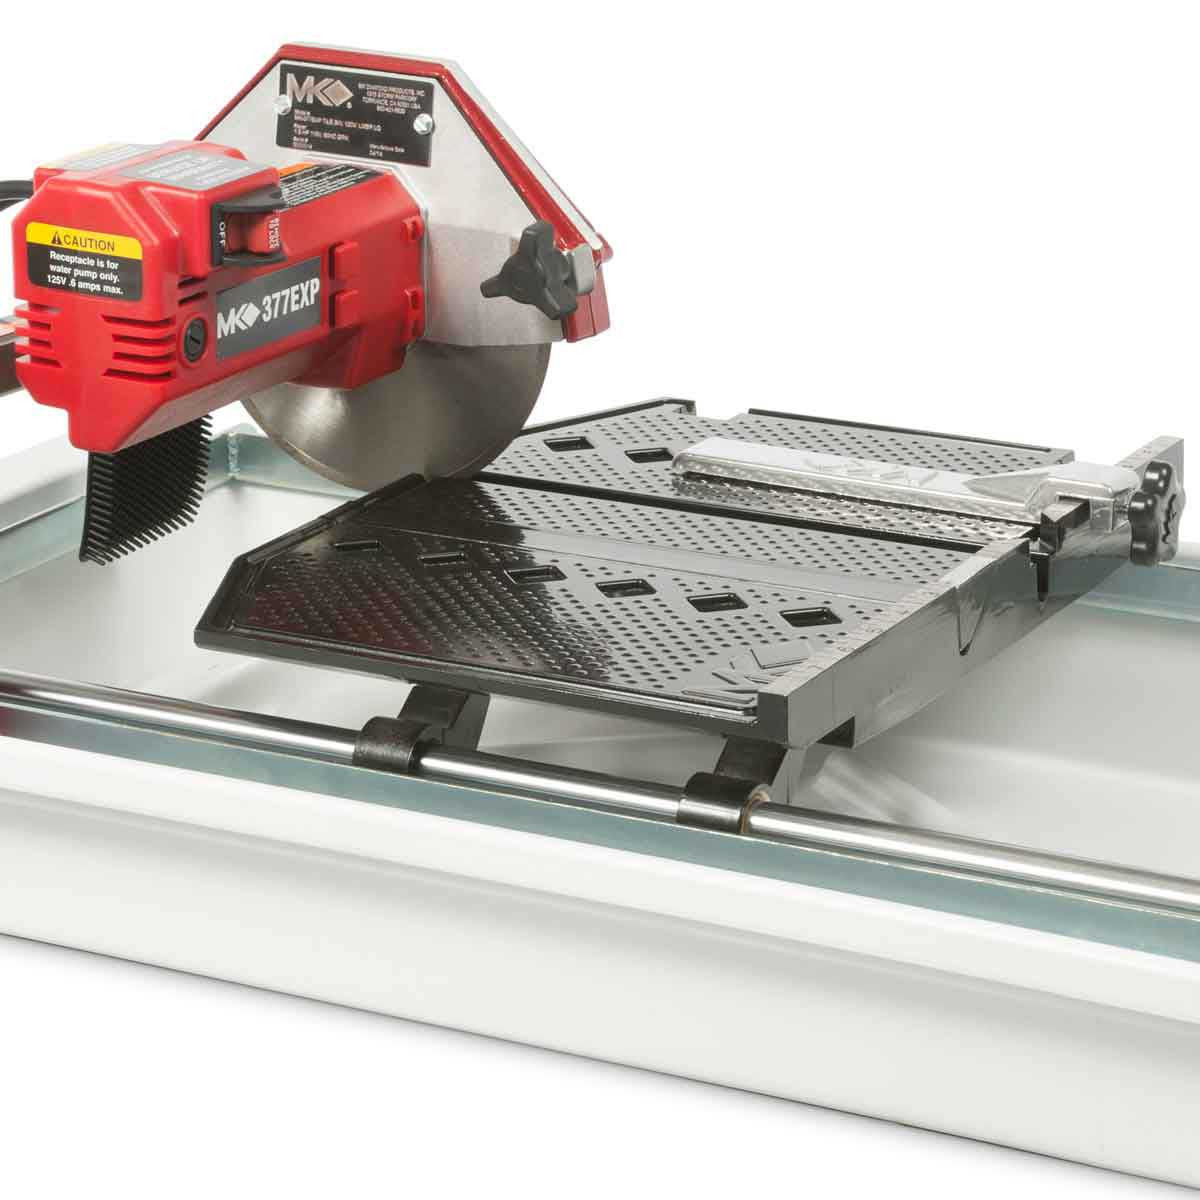 MK-377EXP 7 inch direct drive tile saw motor